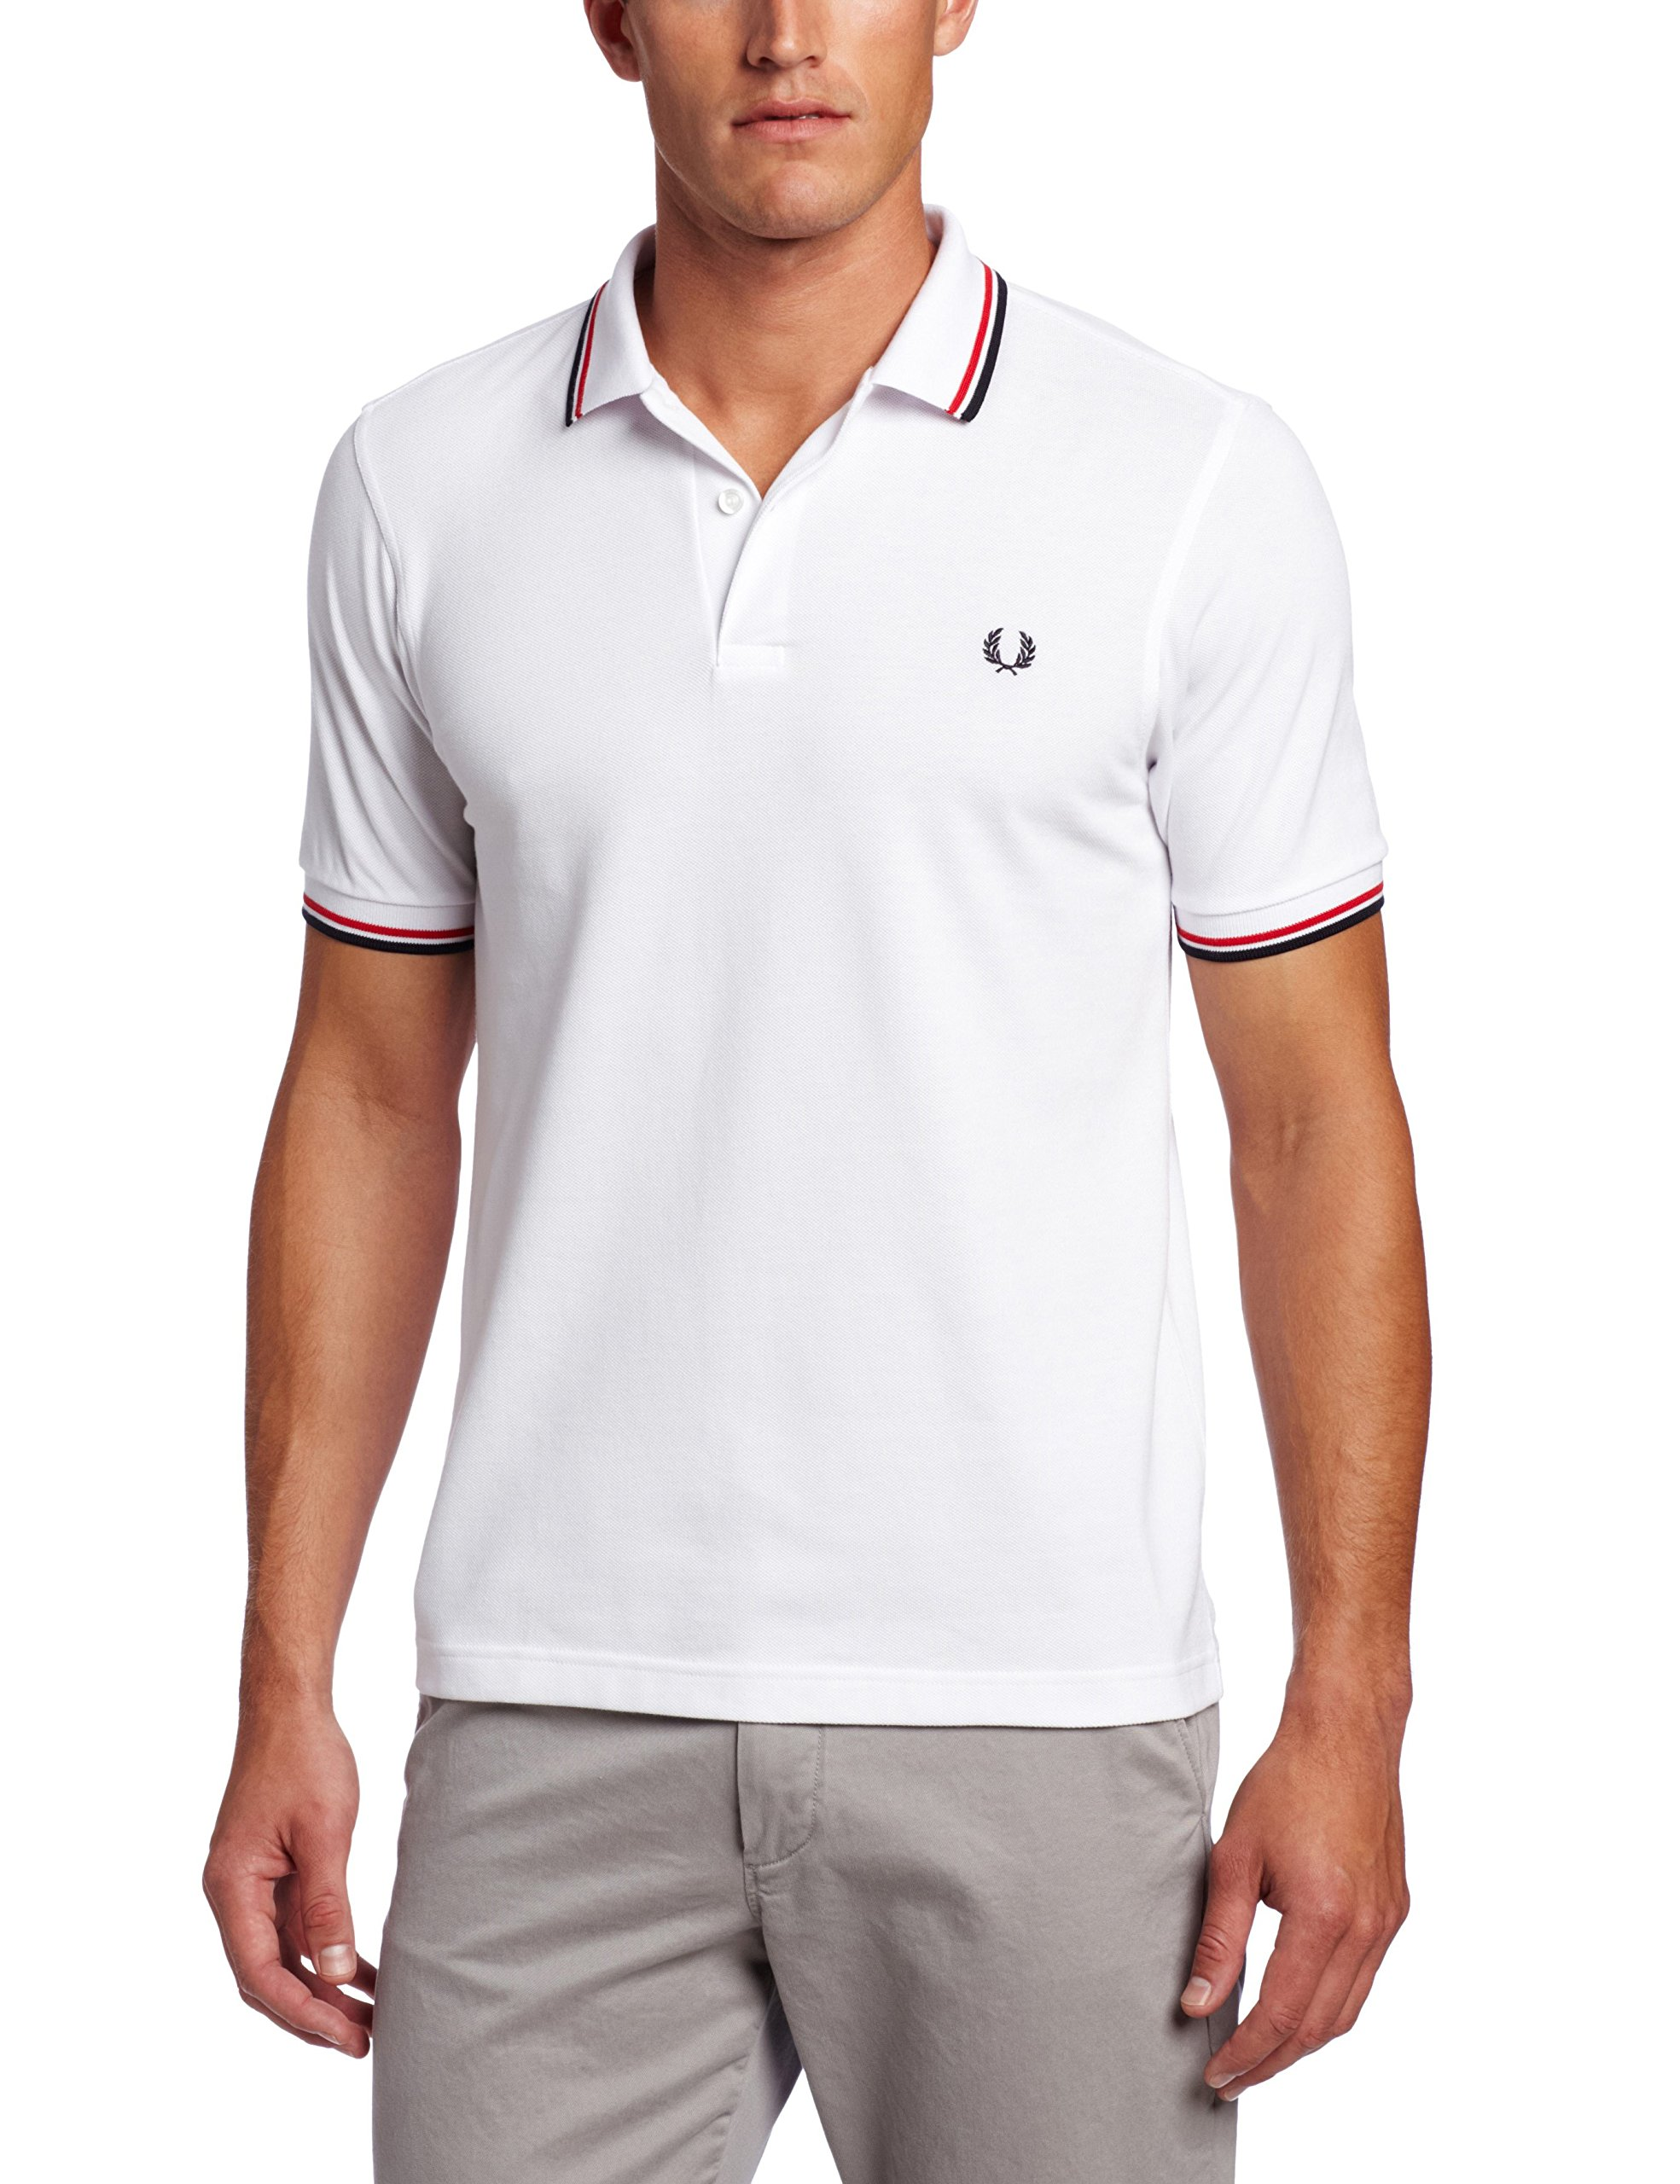 Fred Perry Men's Twin Tipped Polo Shirt-M3600, White/BrightRed/Navy, Medium